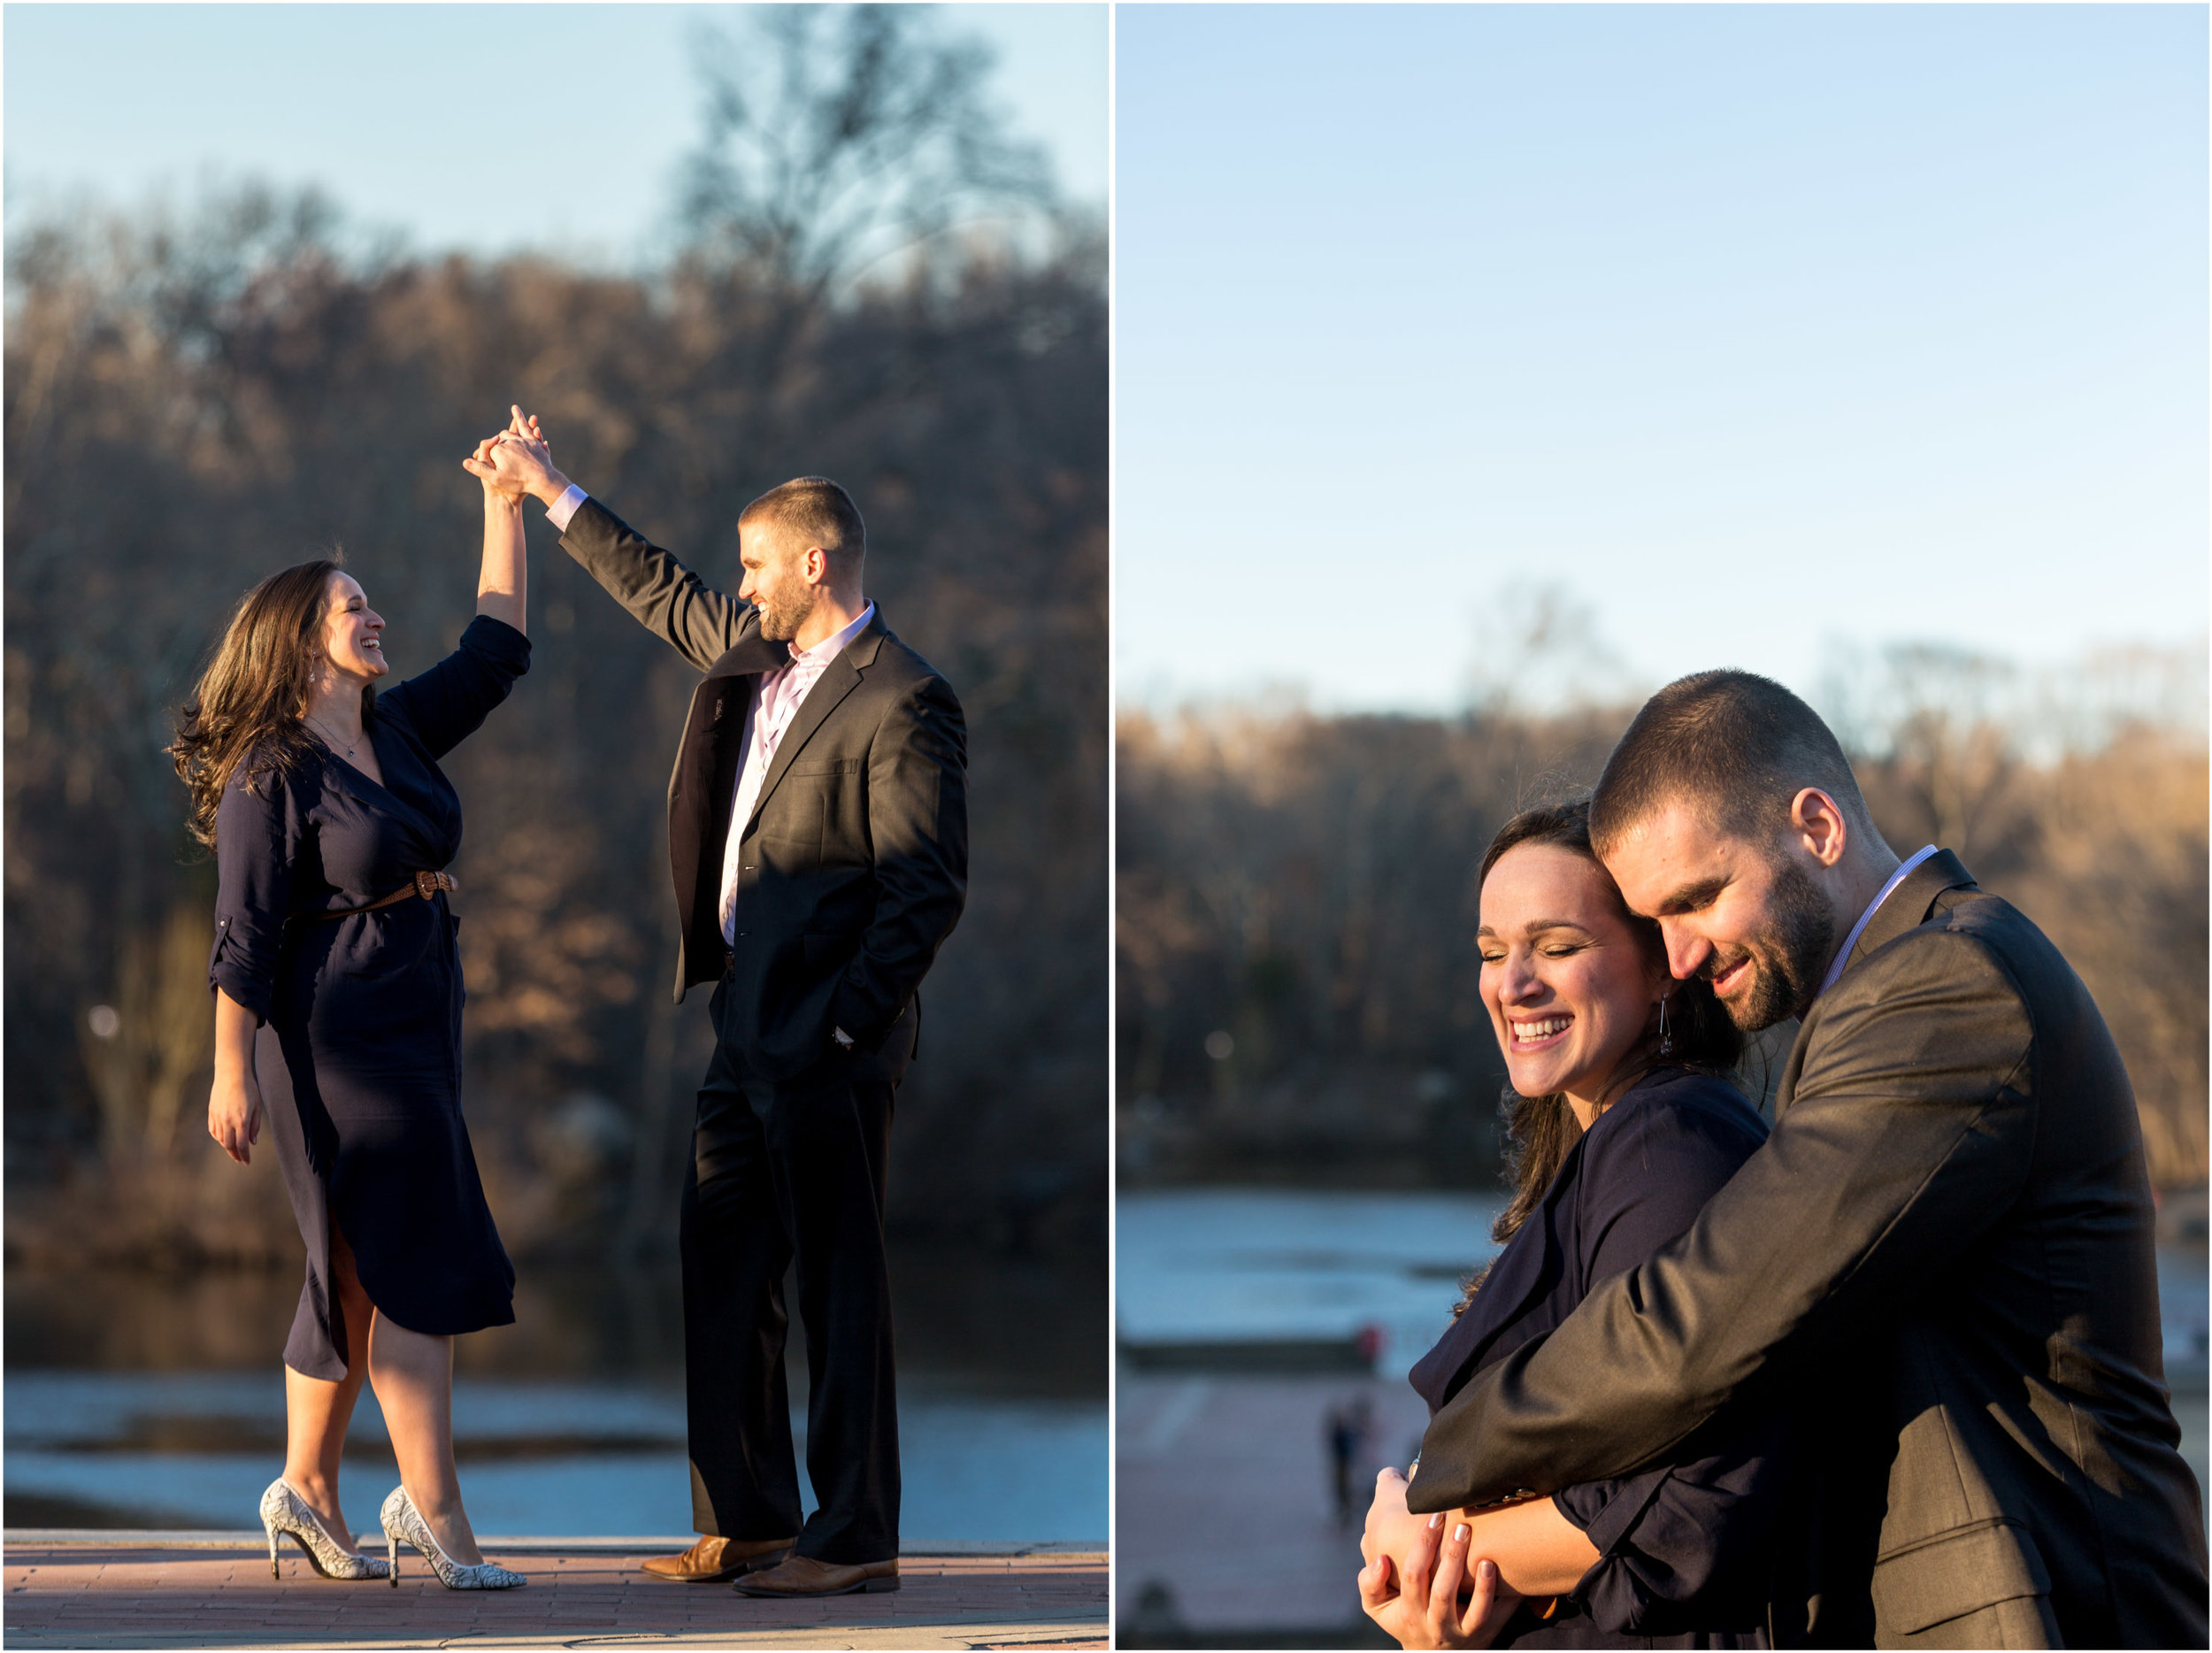 NYC Central Park Engagement Session Shoot Wedding Photographer-6.jpg